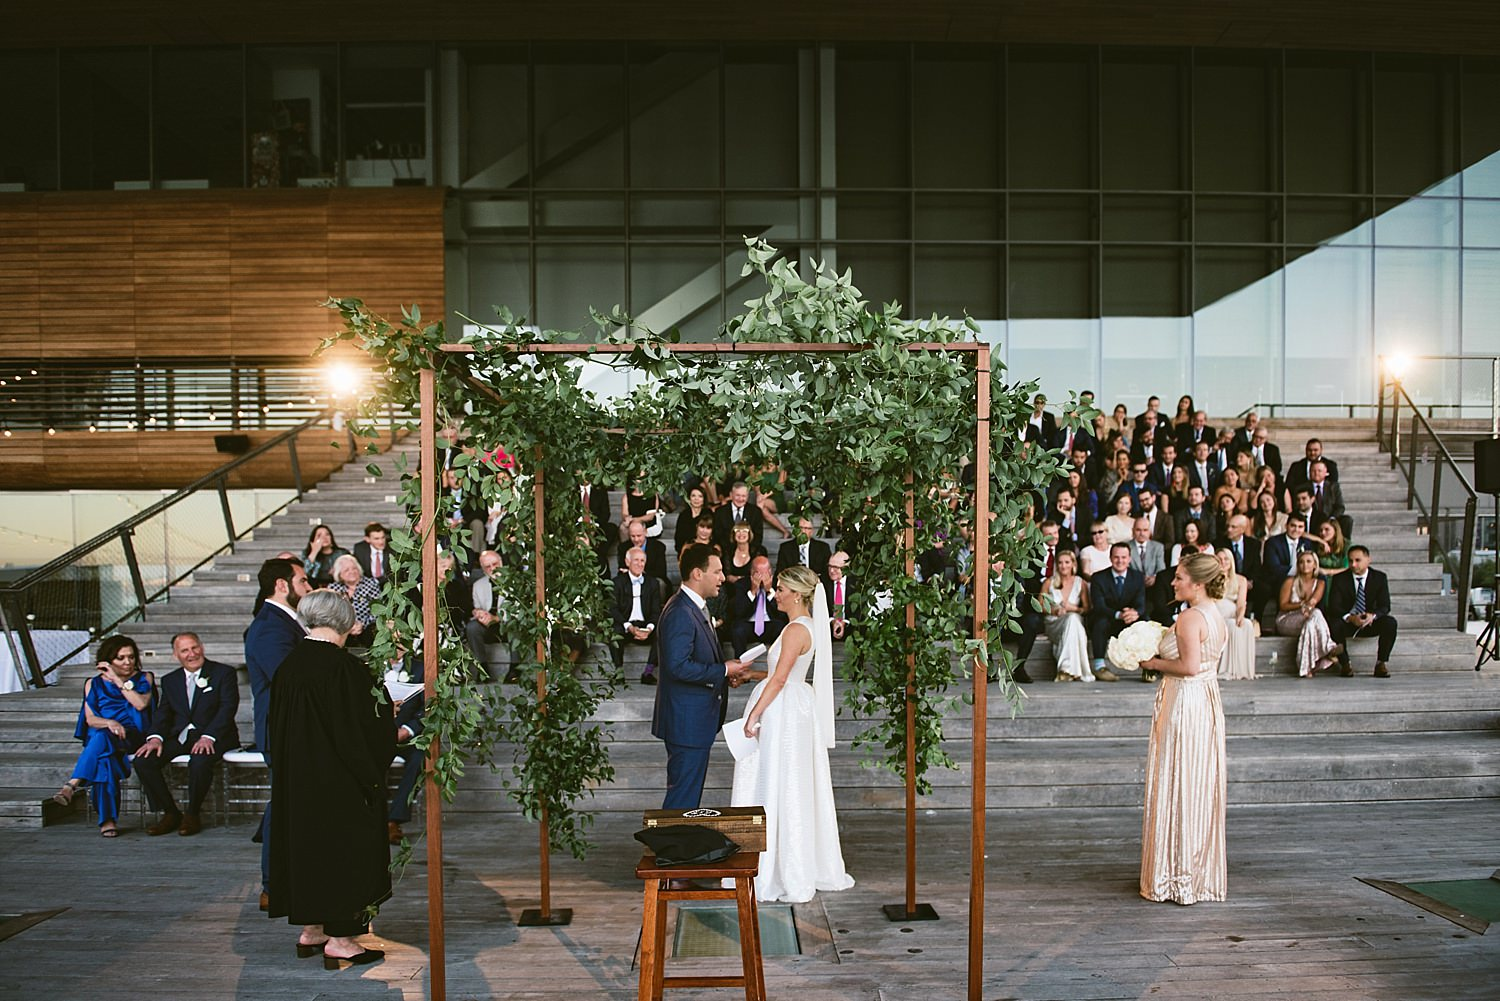 wedding ceremony under chuppah